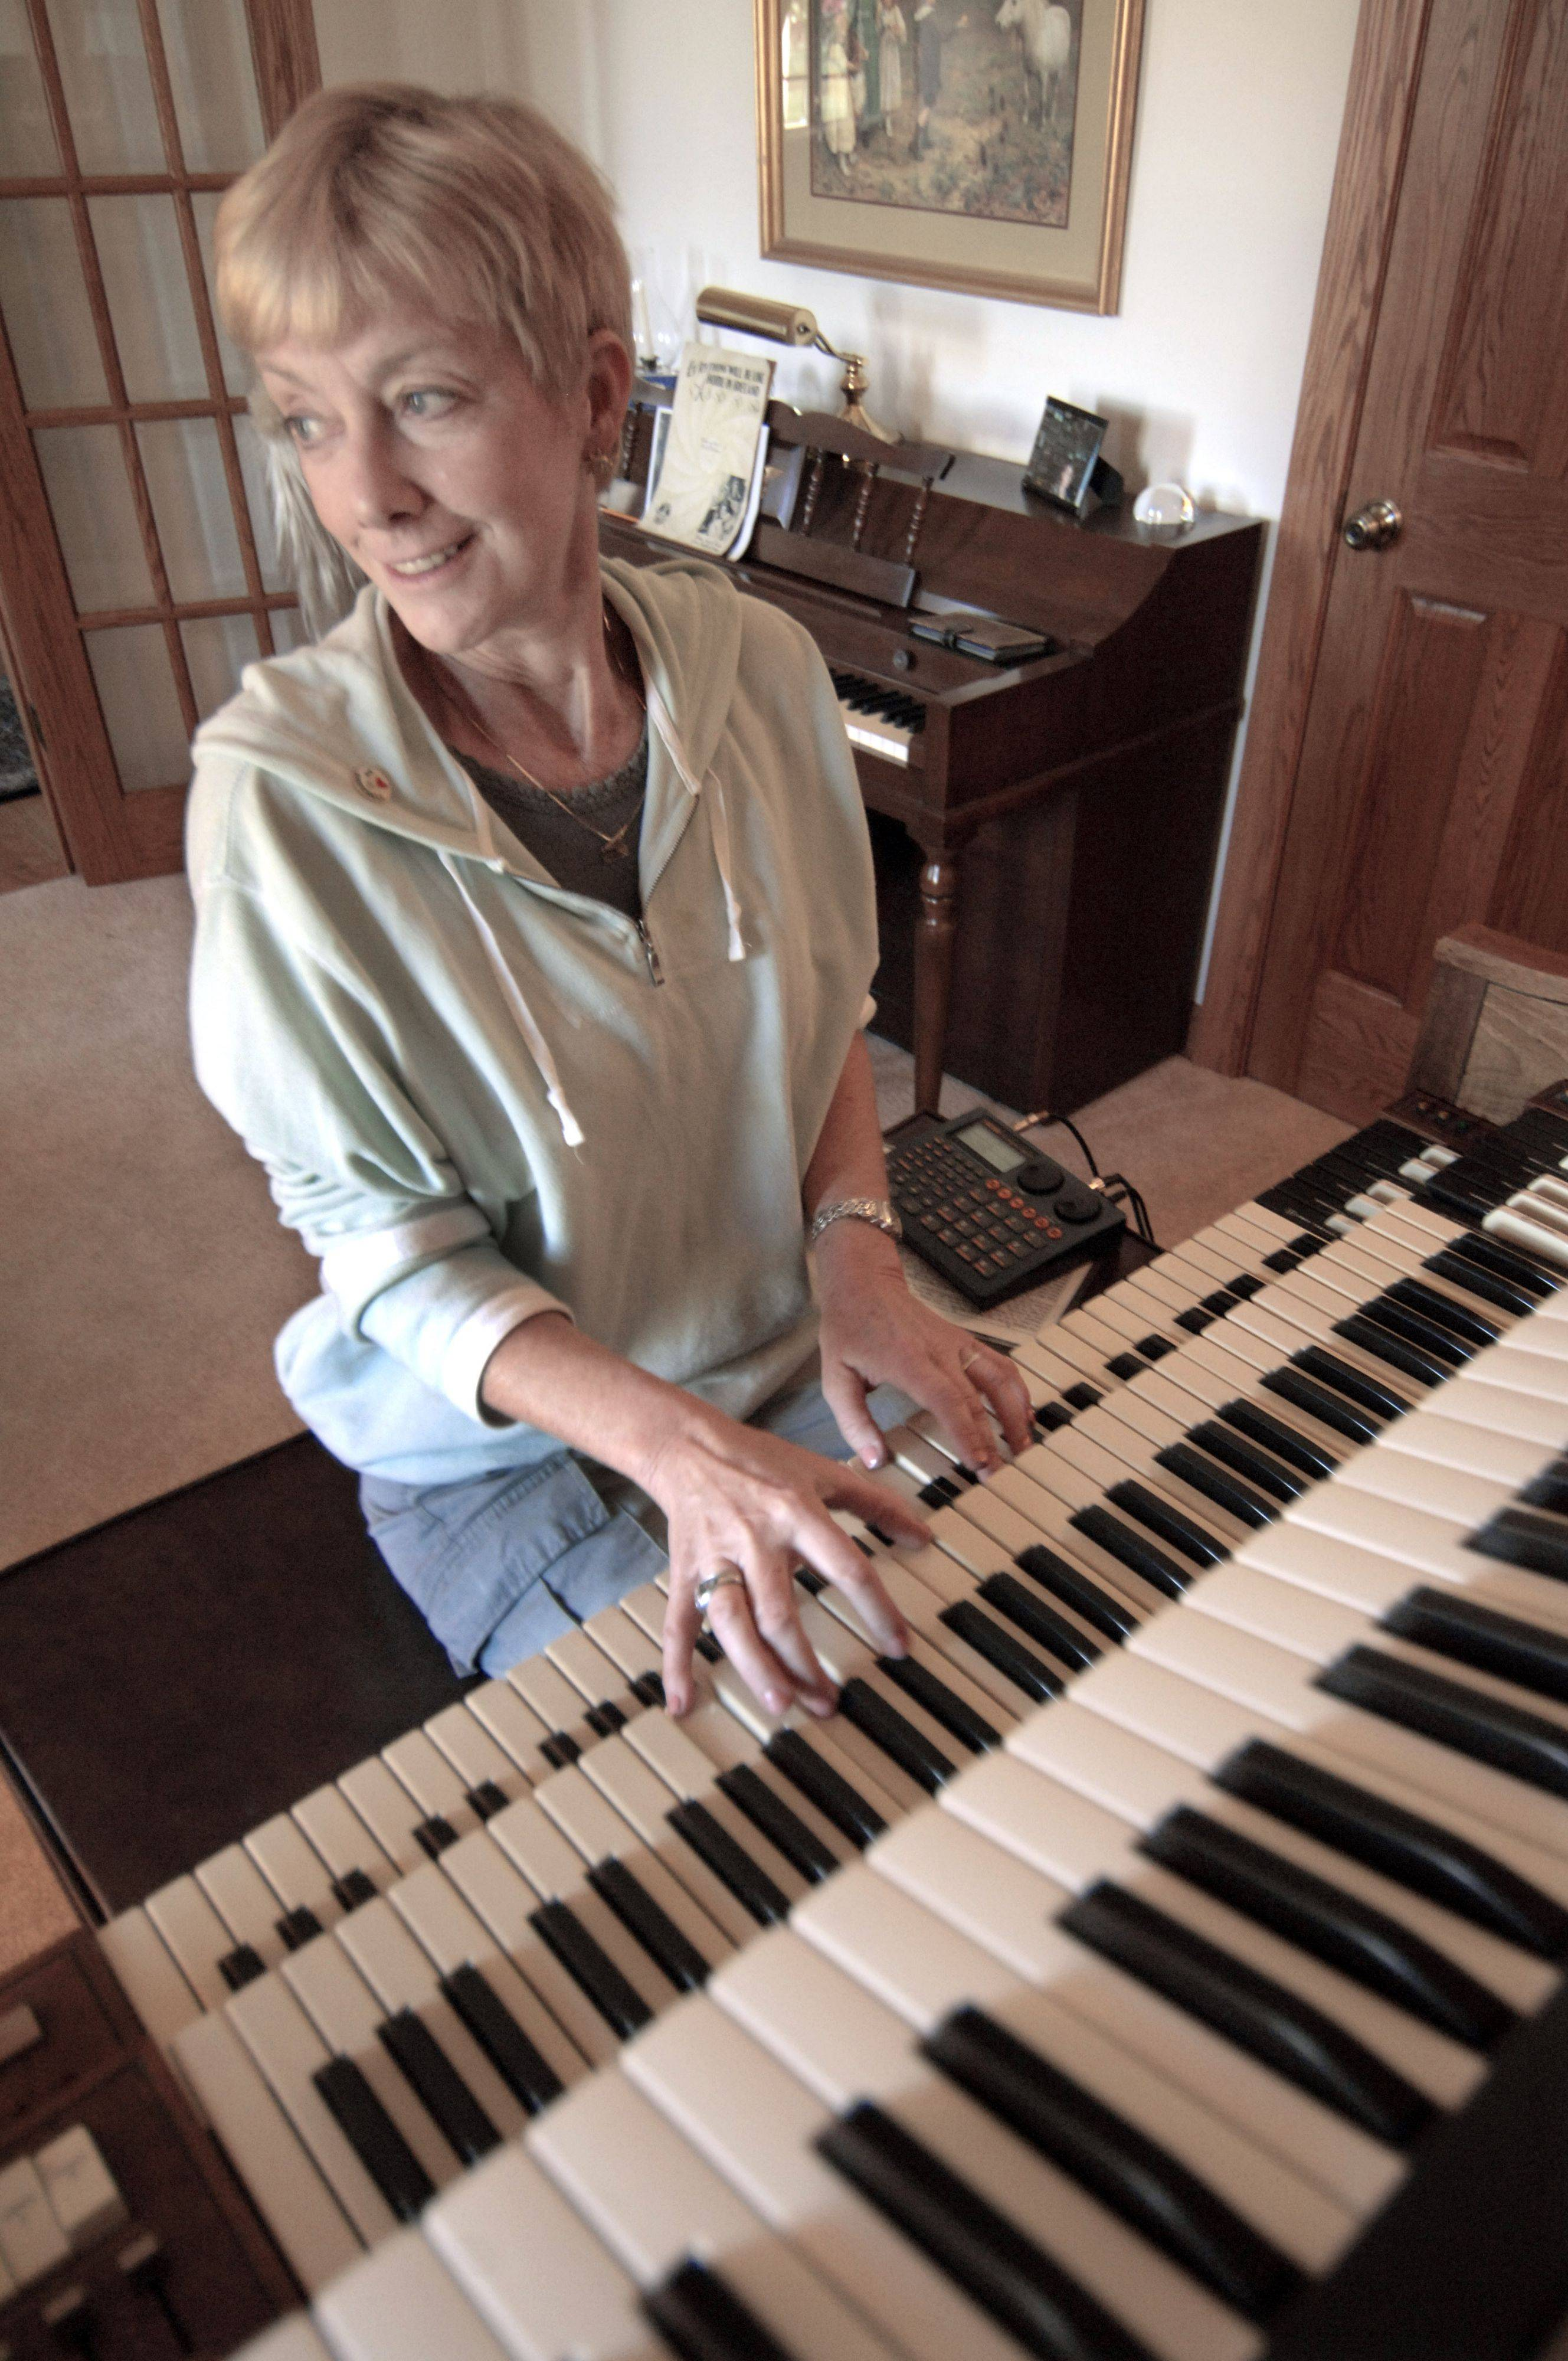 While this Hammond organ in her Mundelein home can still play all the ballpark favorites from her 41-year career, retired White Sox organist Nancy Faust will watch today's home opener on TV from a more comfy seat in her Mundelein home.